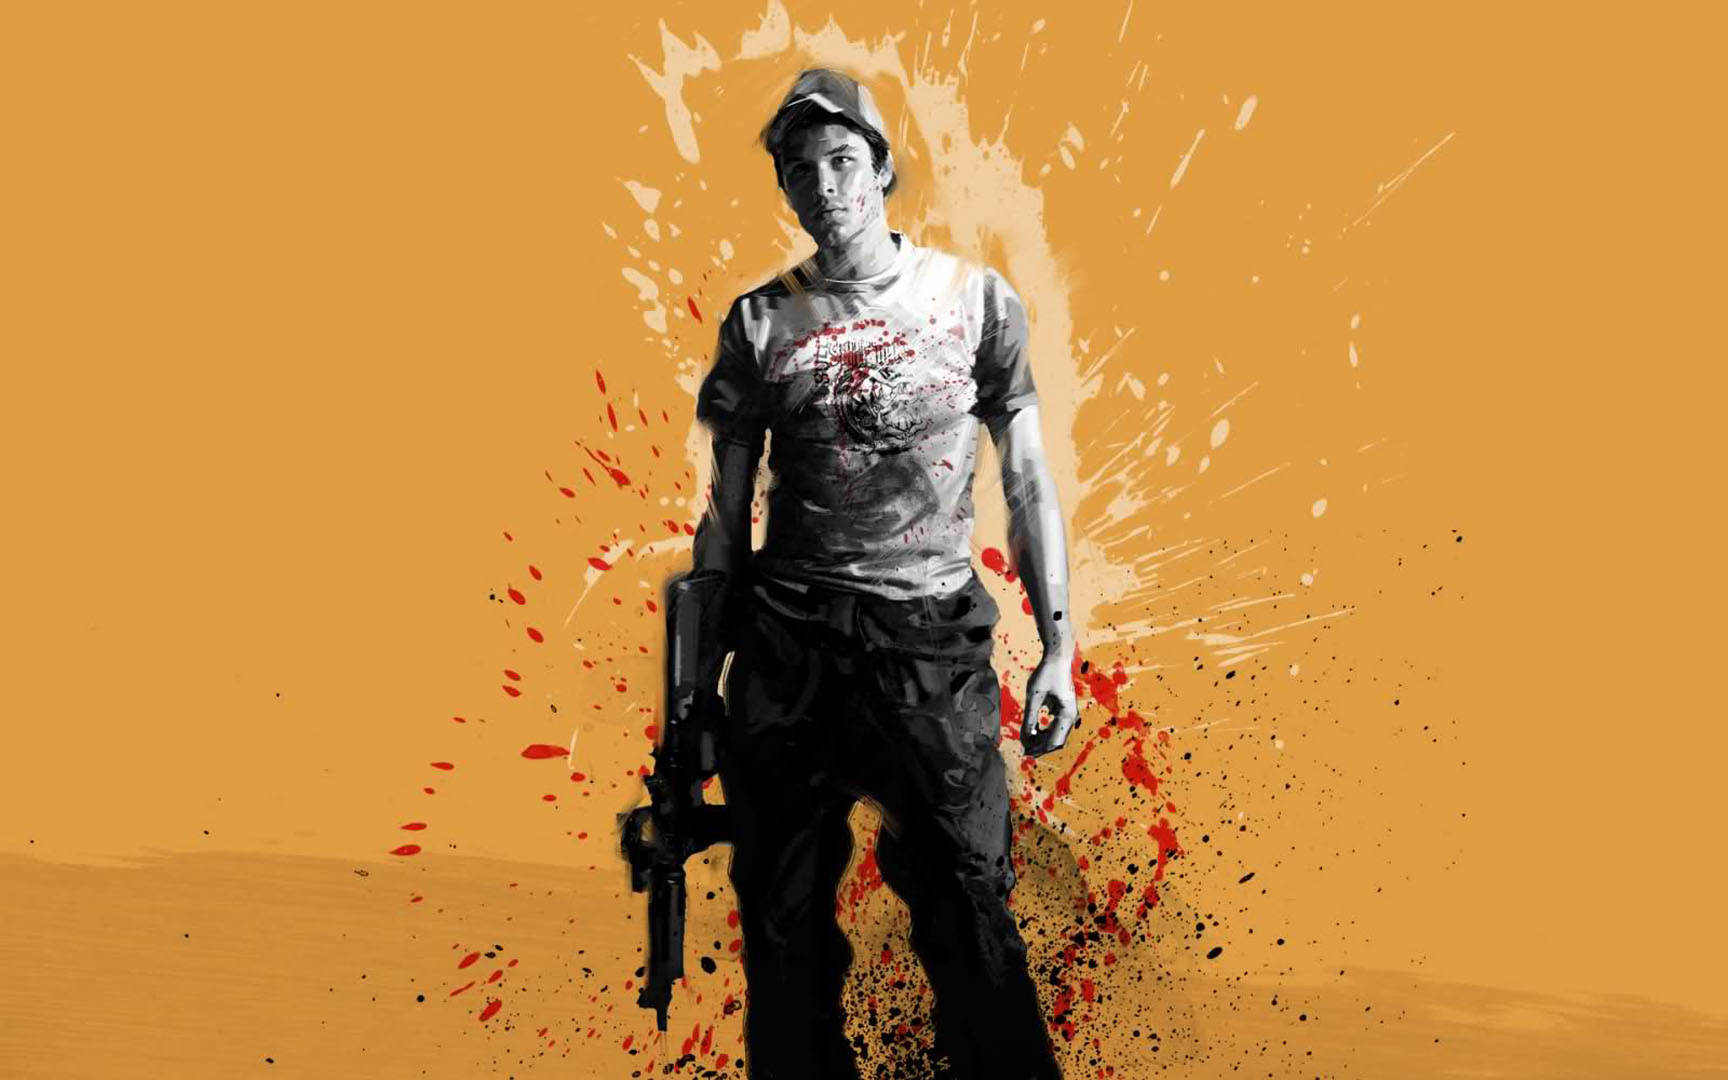 Nick With Submachinegun Left 4 Dead 2 Wallpaper